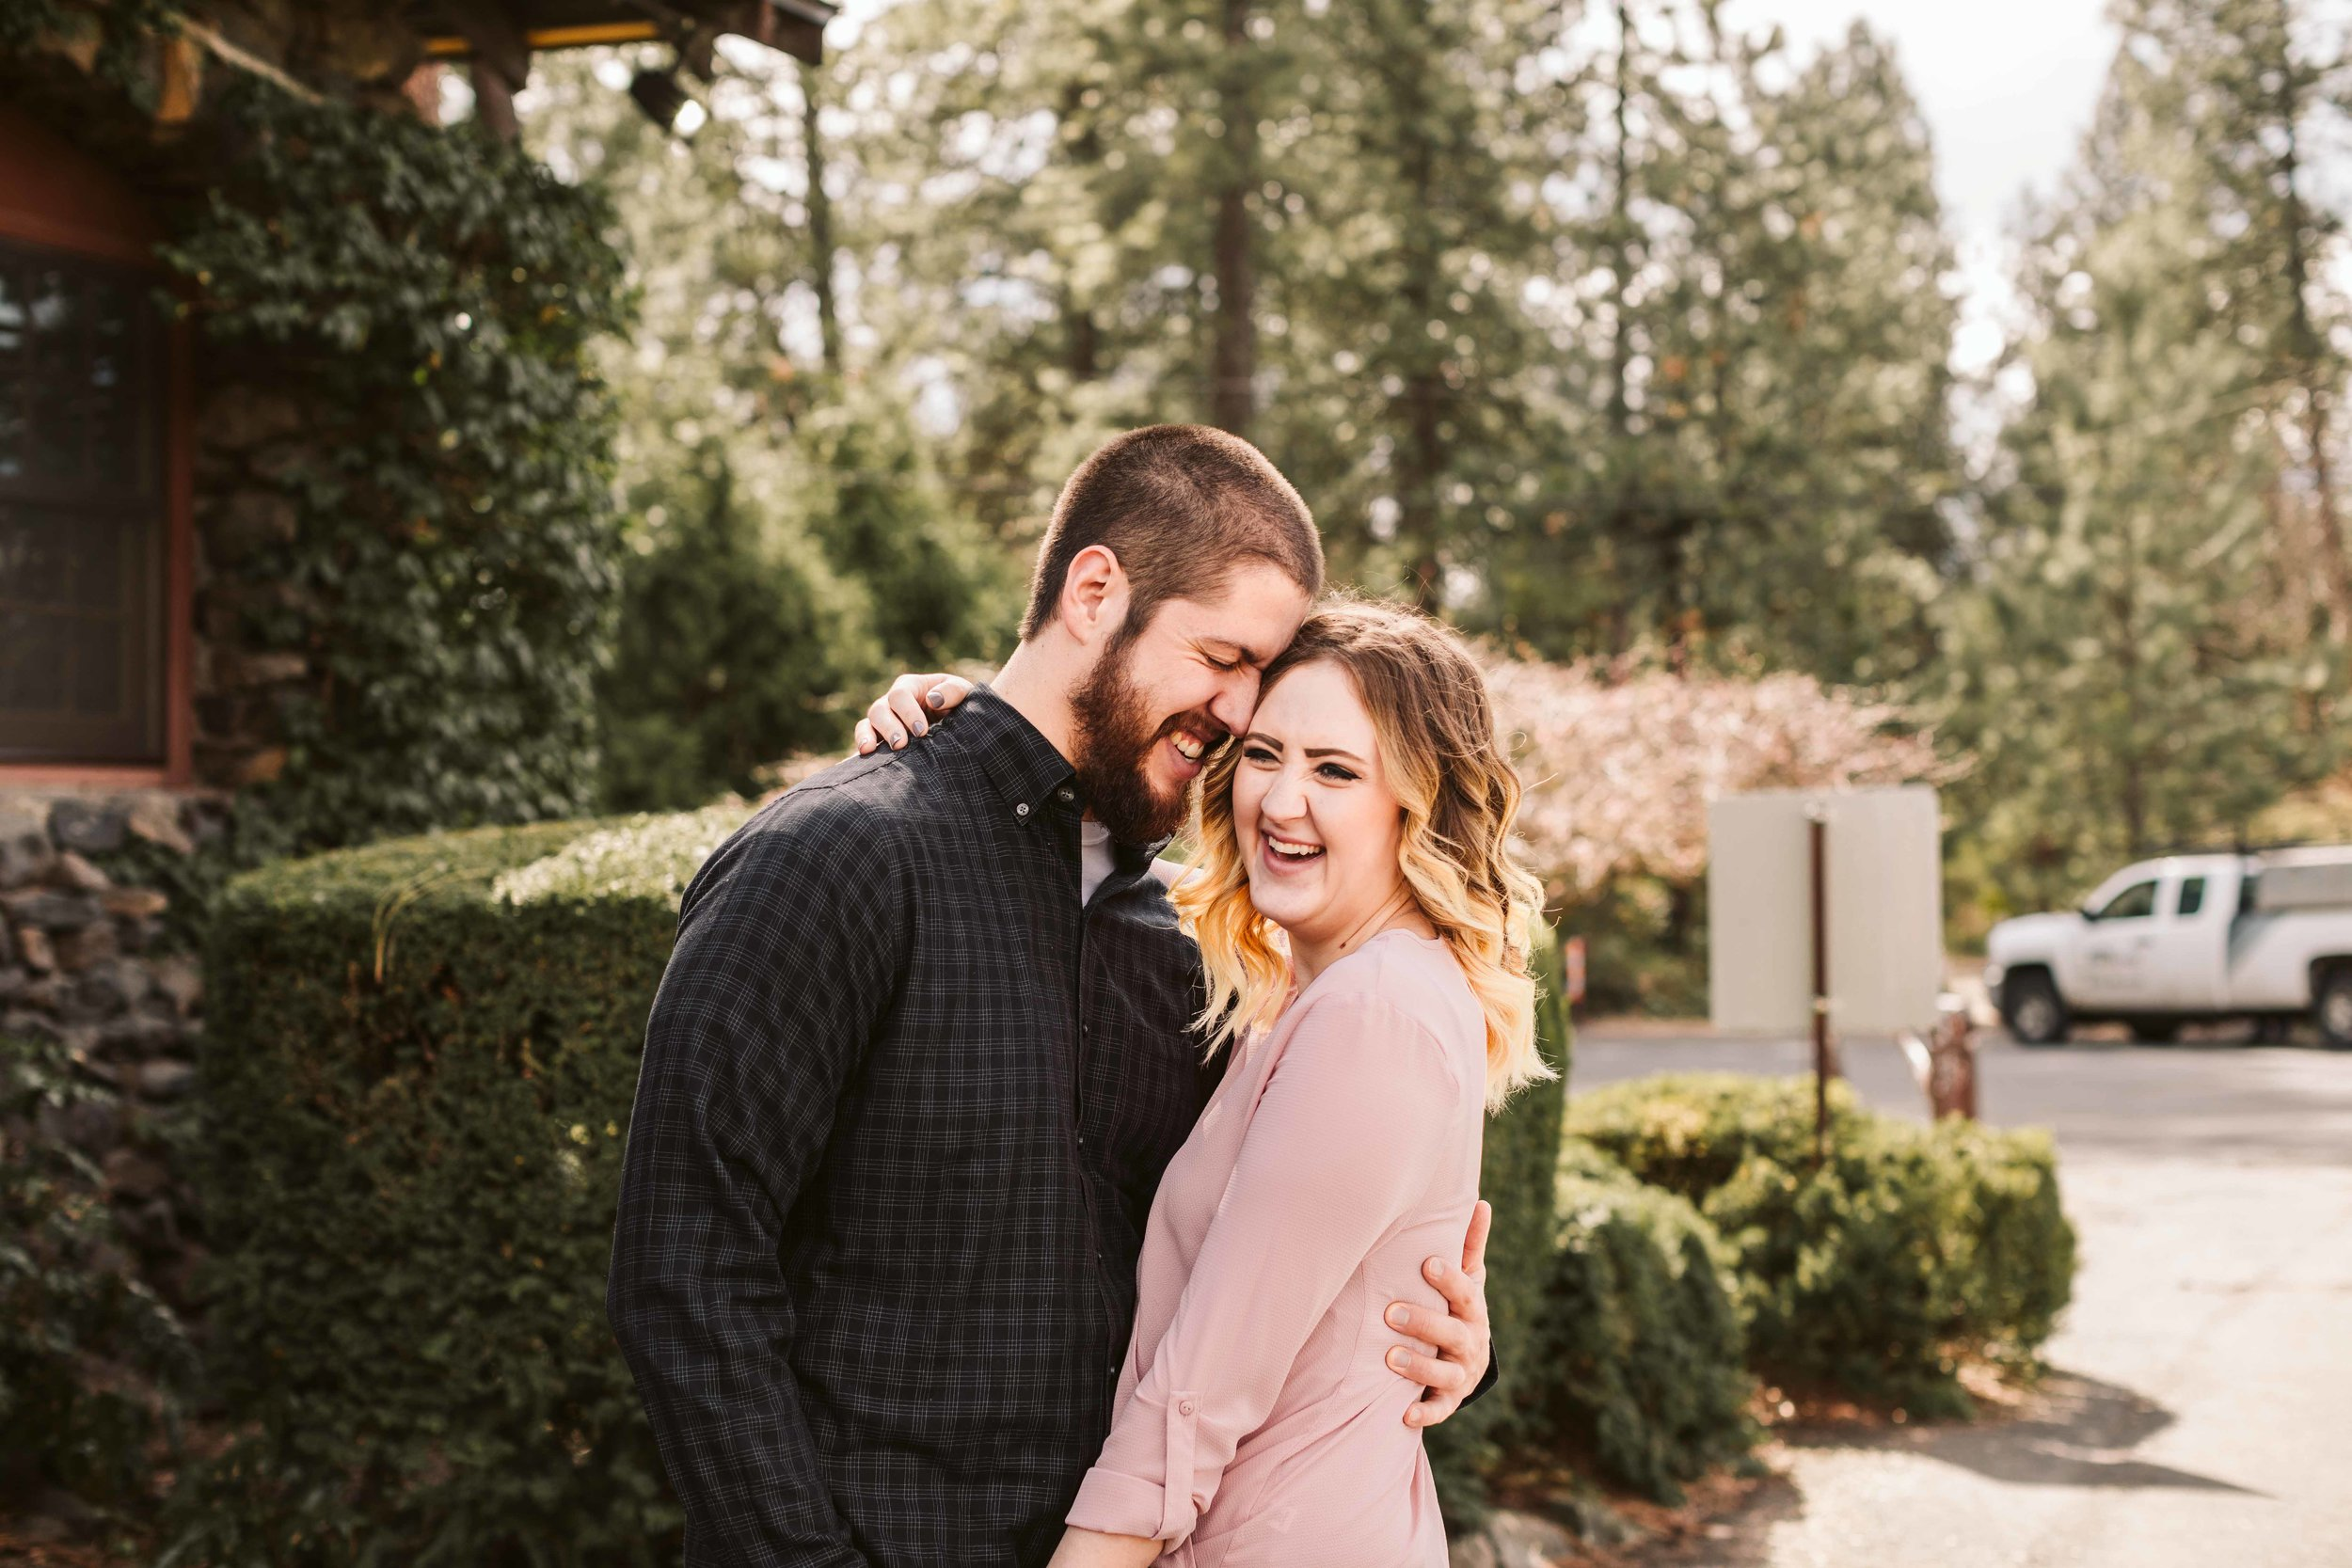 spokane-engagement-photographer-24.jpg